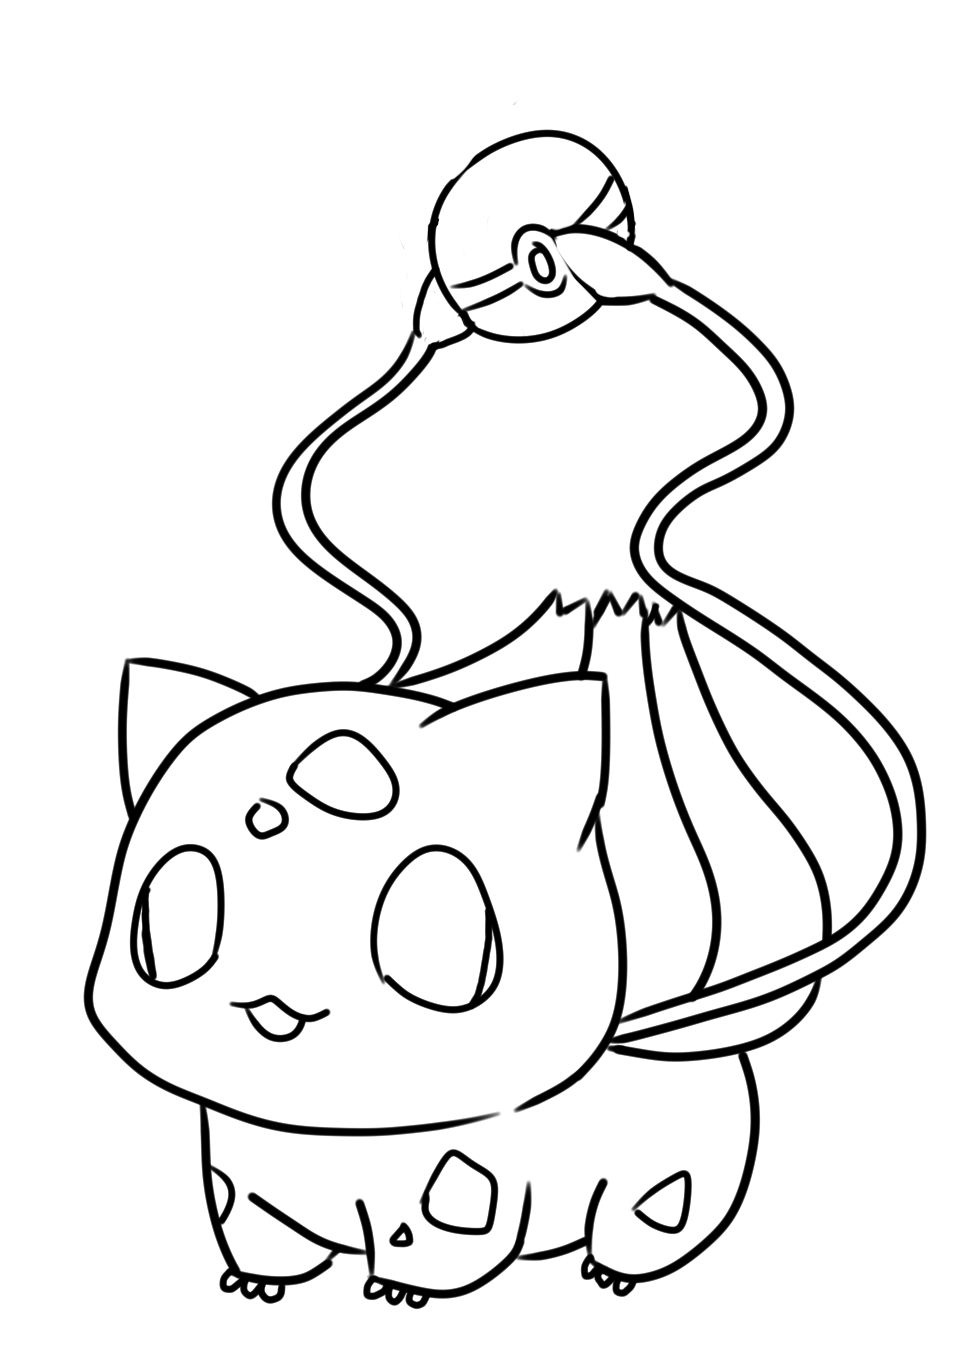 bulbasaur coloring page bulbasaur coloring pages free pokemon coloring pages page bulbasaur coloring